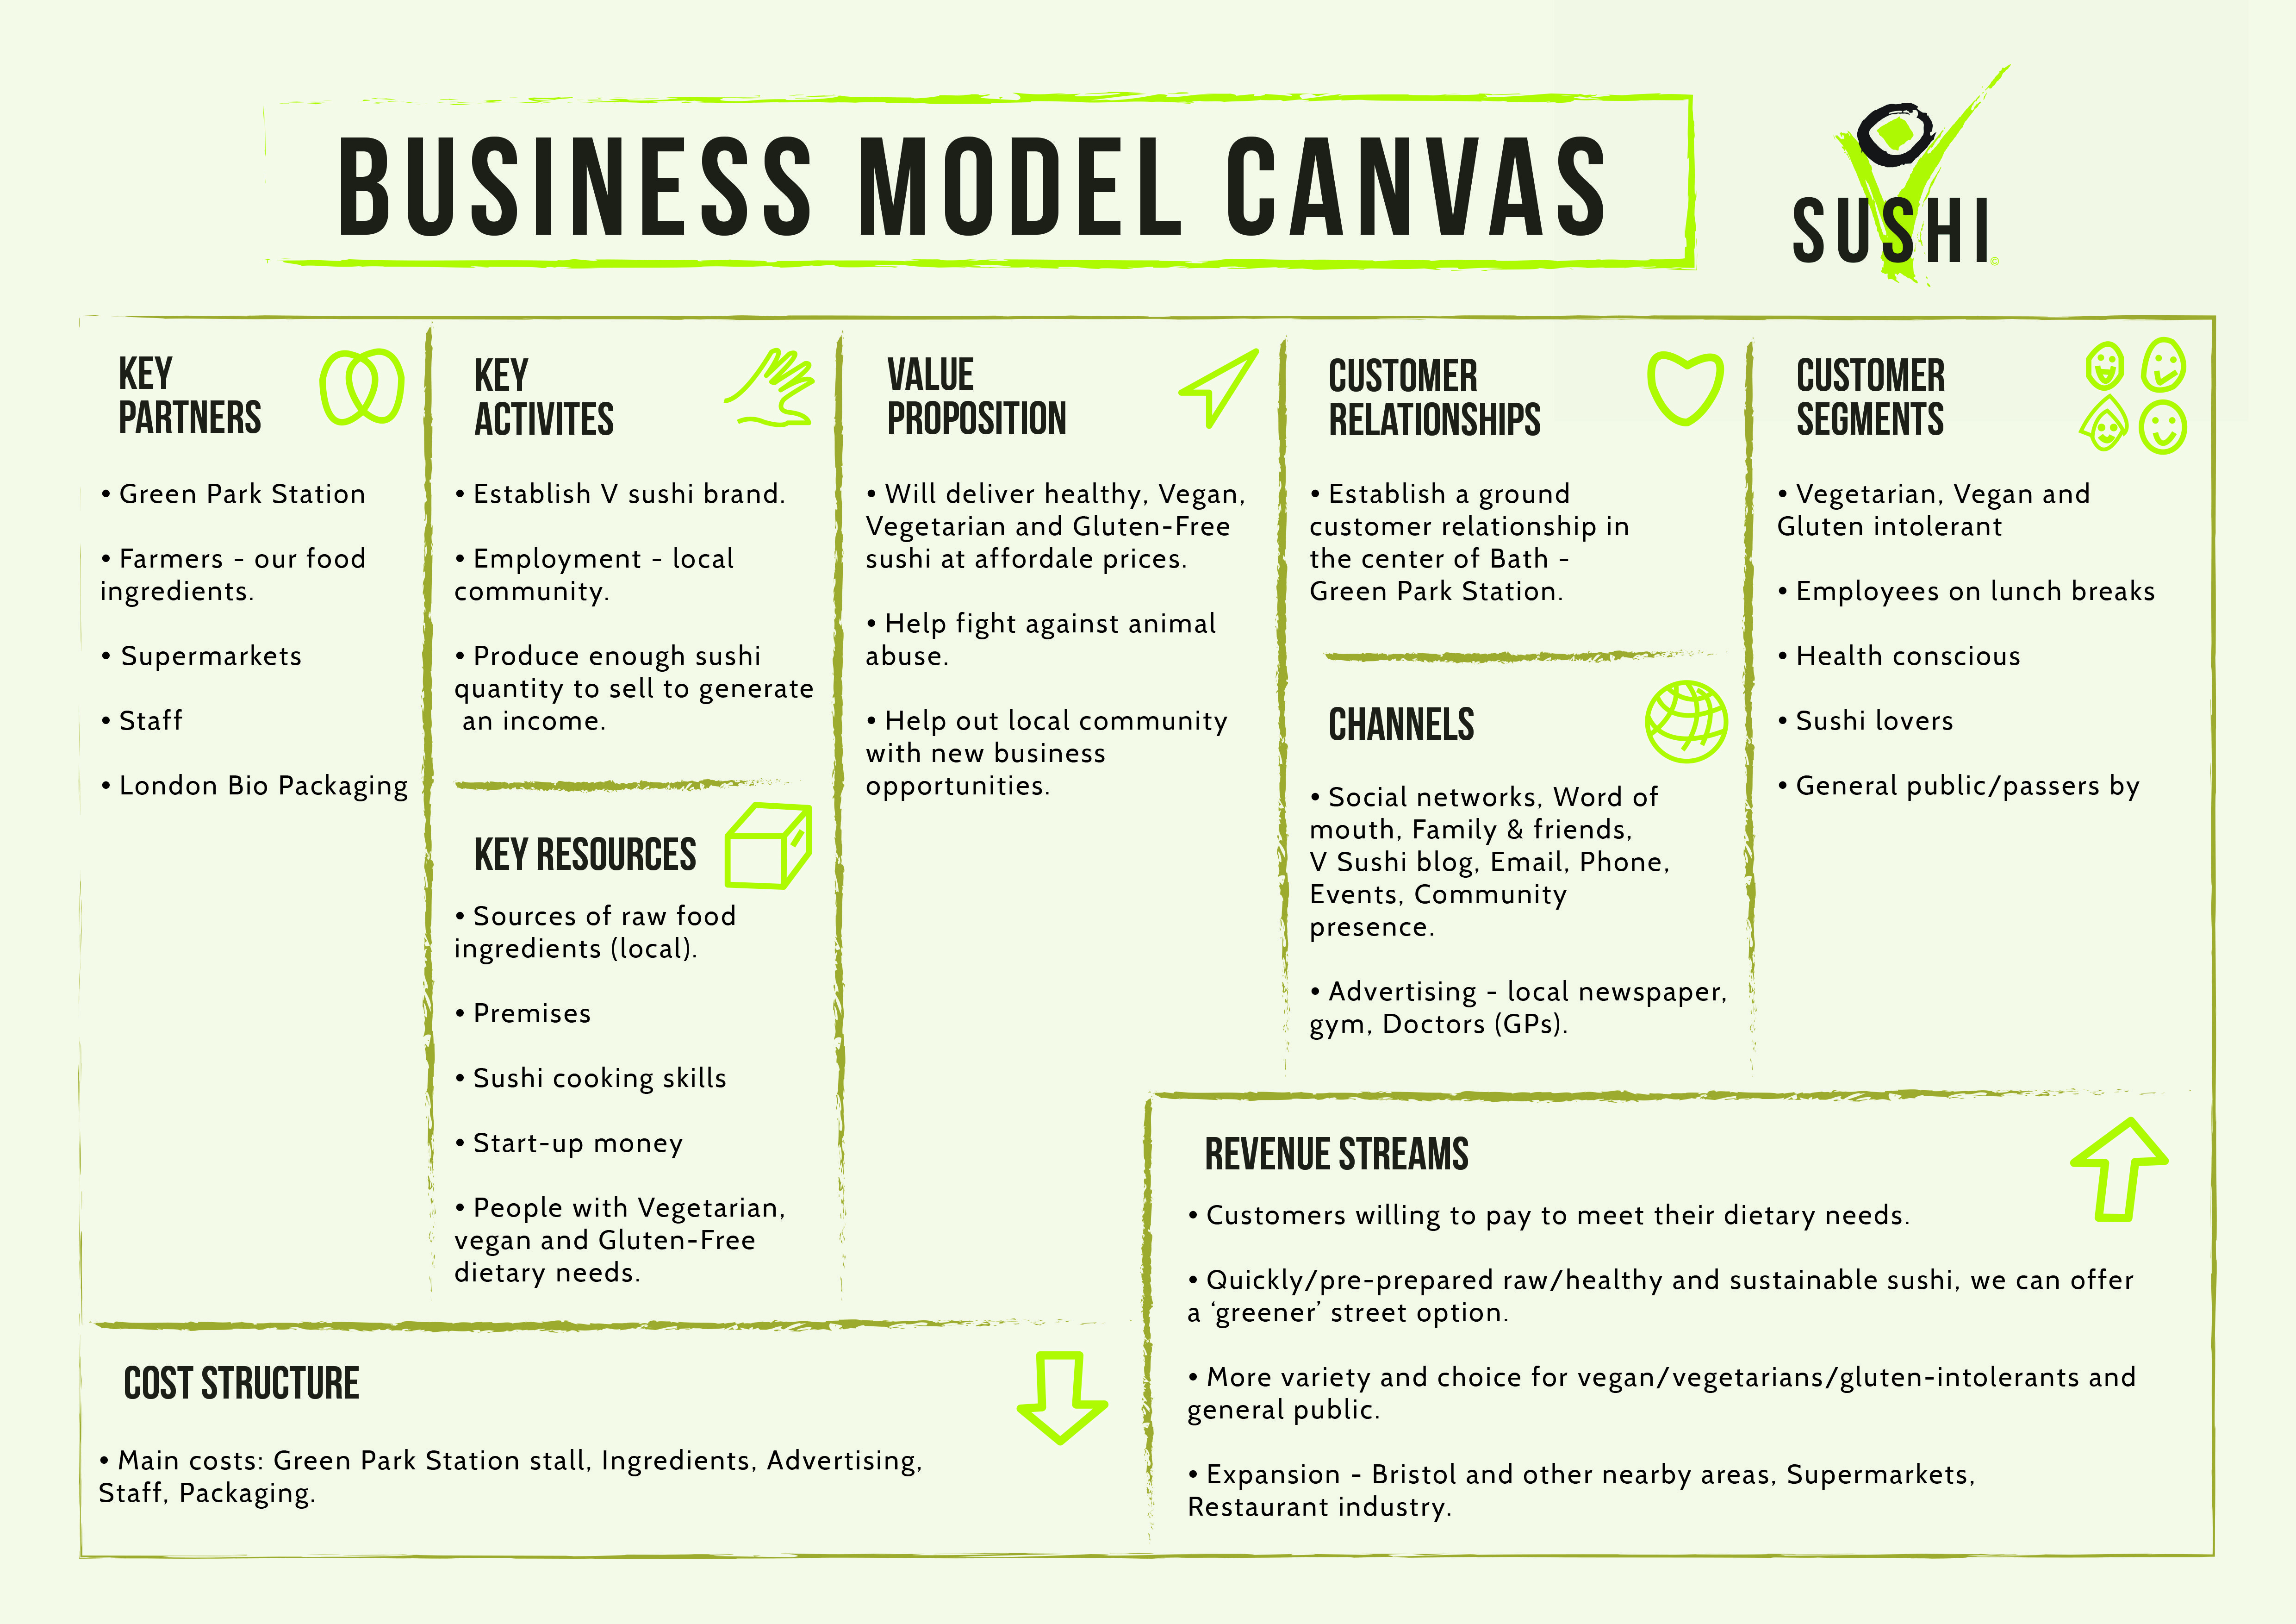 Business Model Canvas For Vegan Sushi Company Concept Business Model Canvas Business Model Canvas Examples Business Model Example